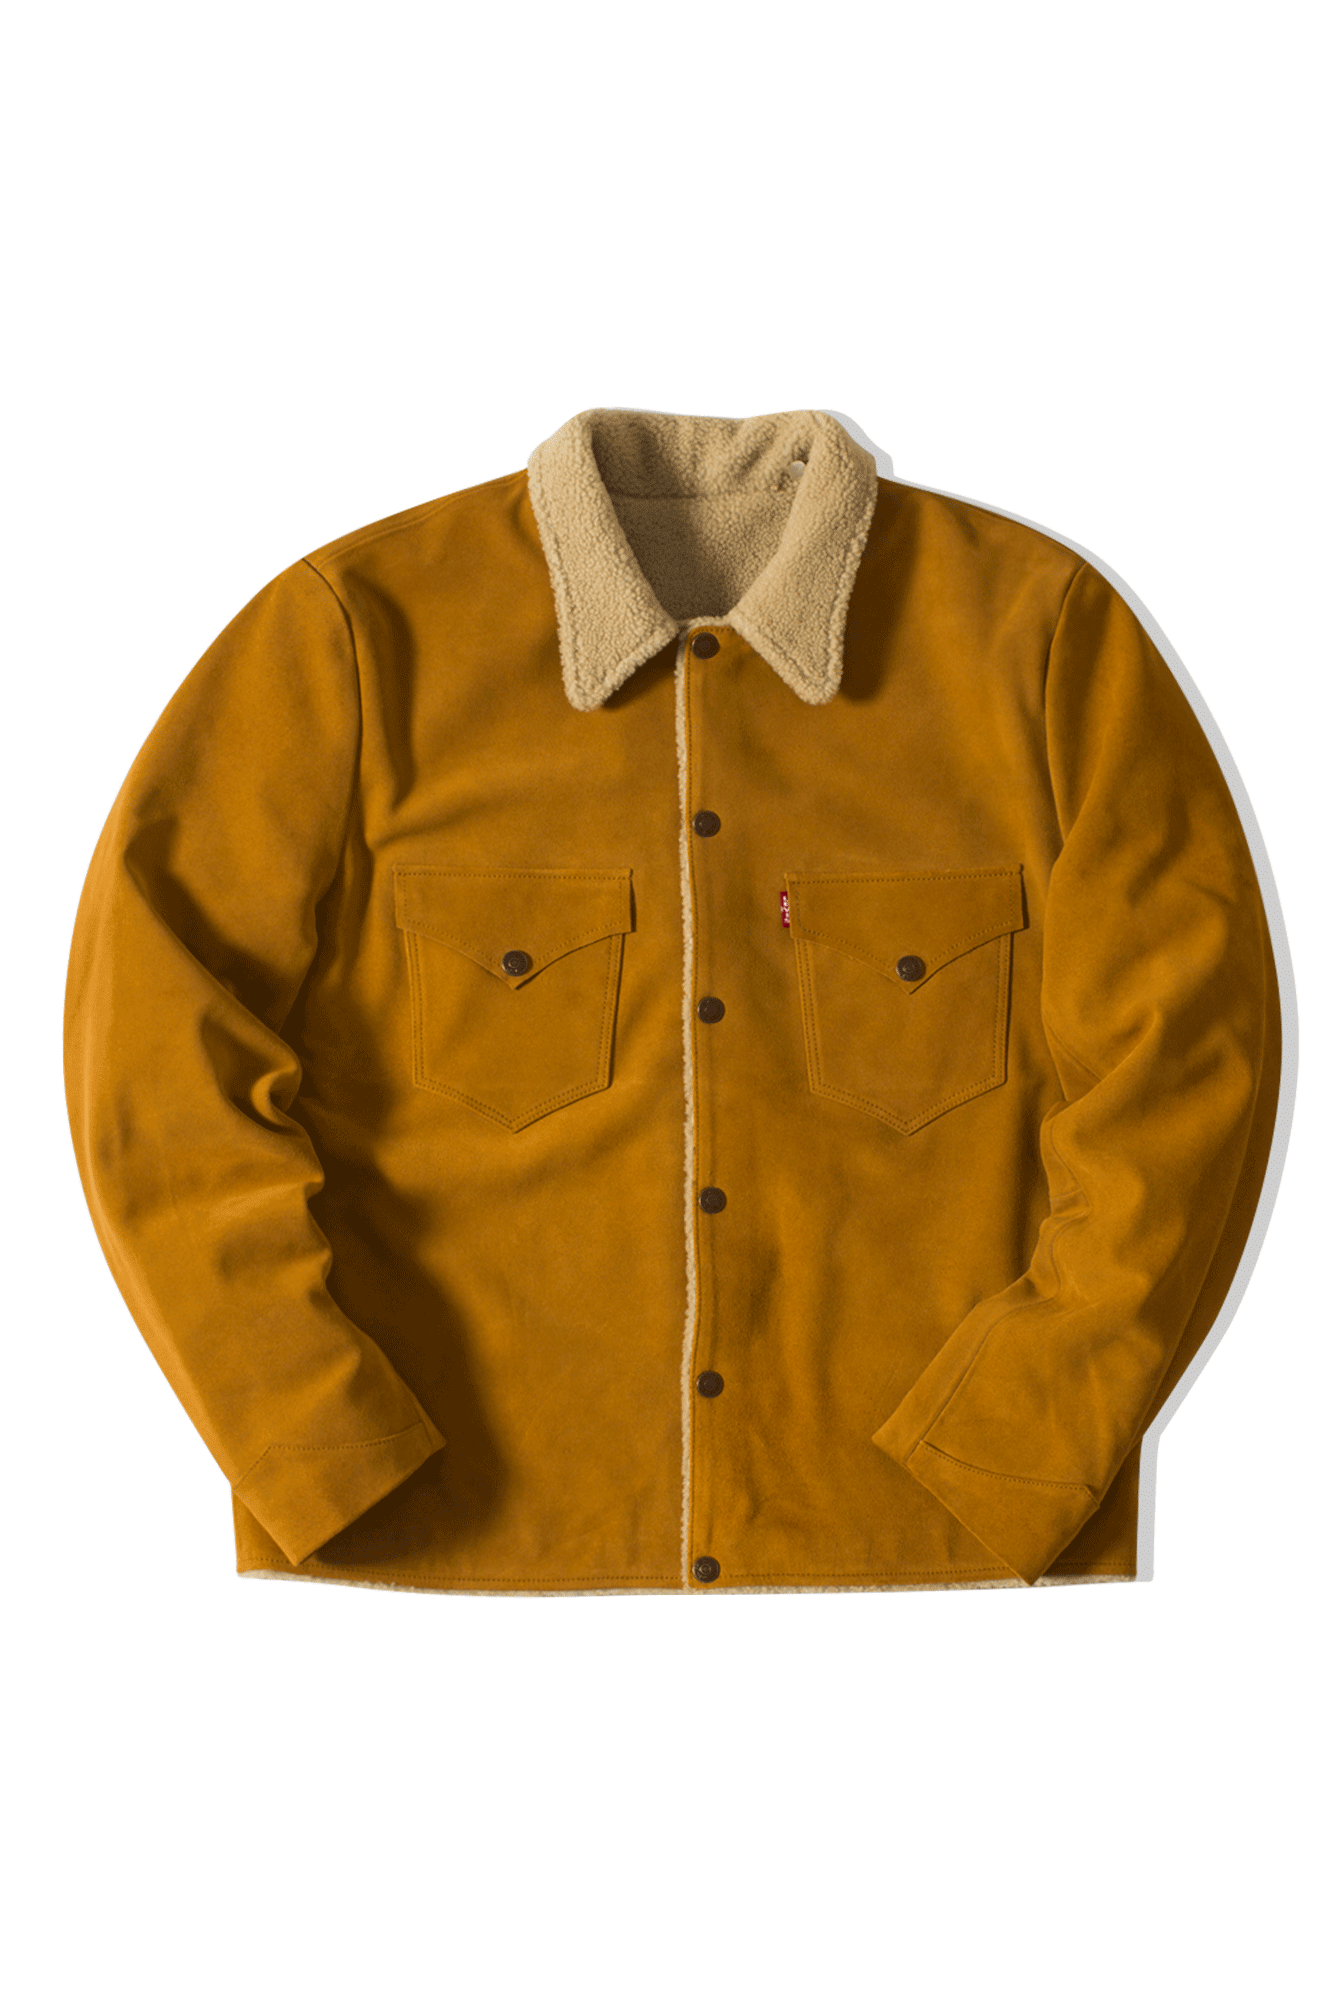 Levi's Coats & Jackets Suede Sherpa Trucker Golden Brown 7488300000#000#C0003#M - One Block Down